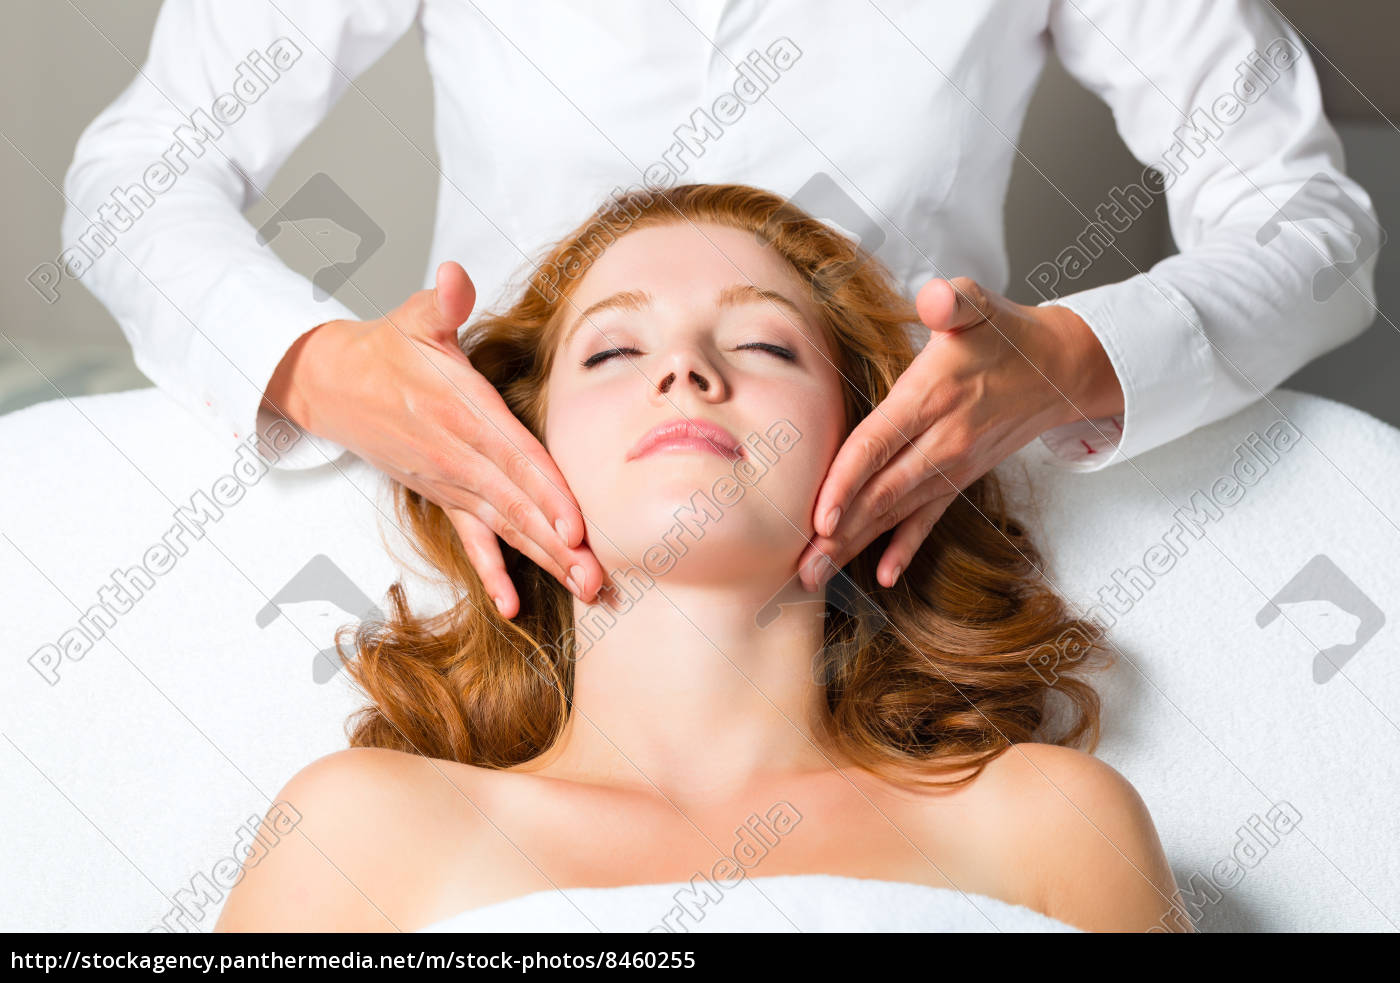 Spa wellness frau  Wellness - Frau erhält Kopfmassage in Spa - Stockfoto - #8460255 ...